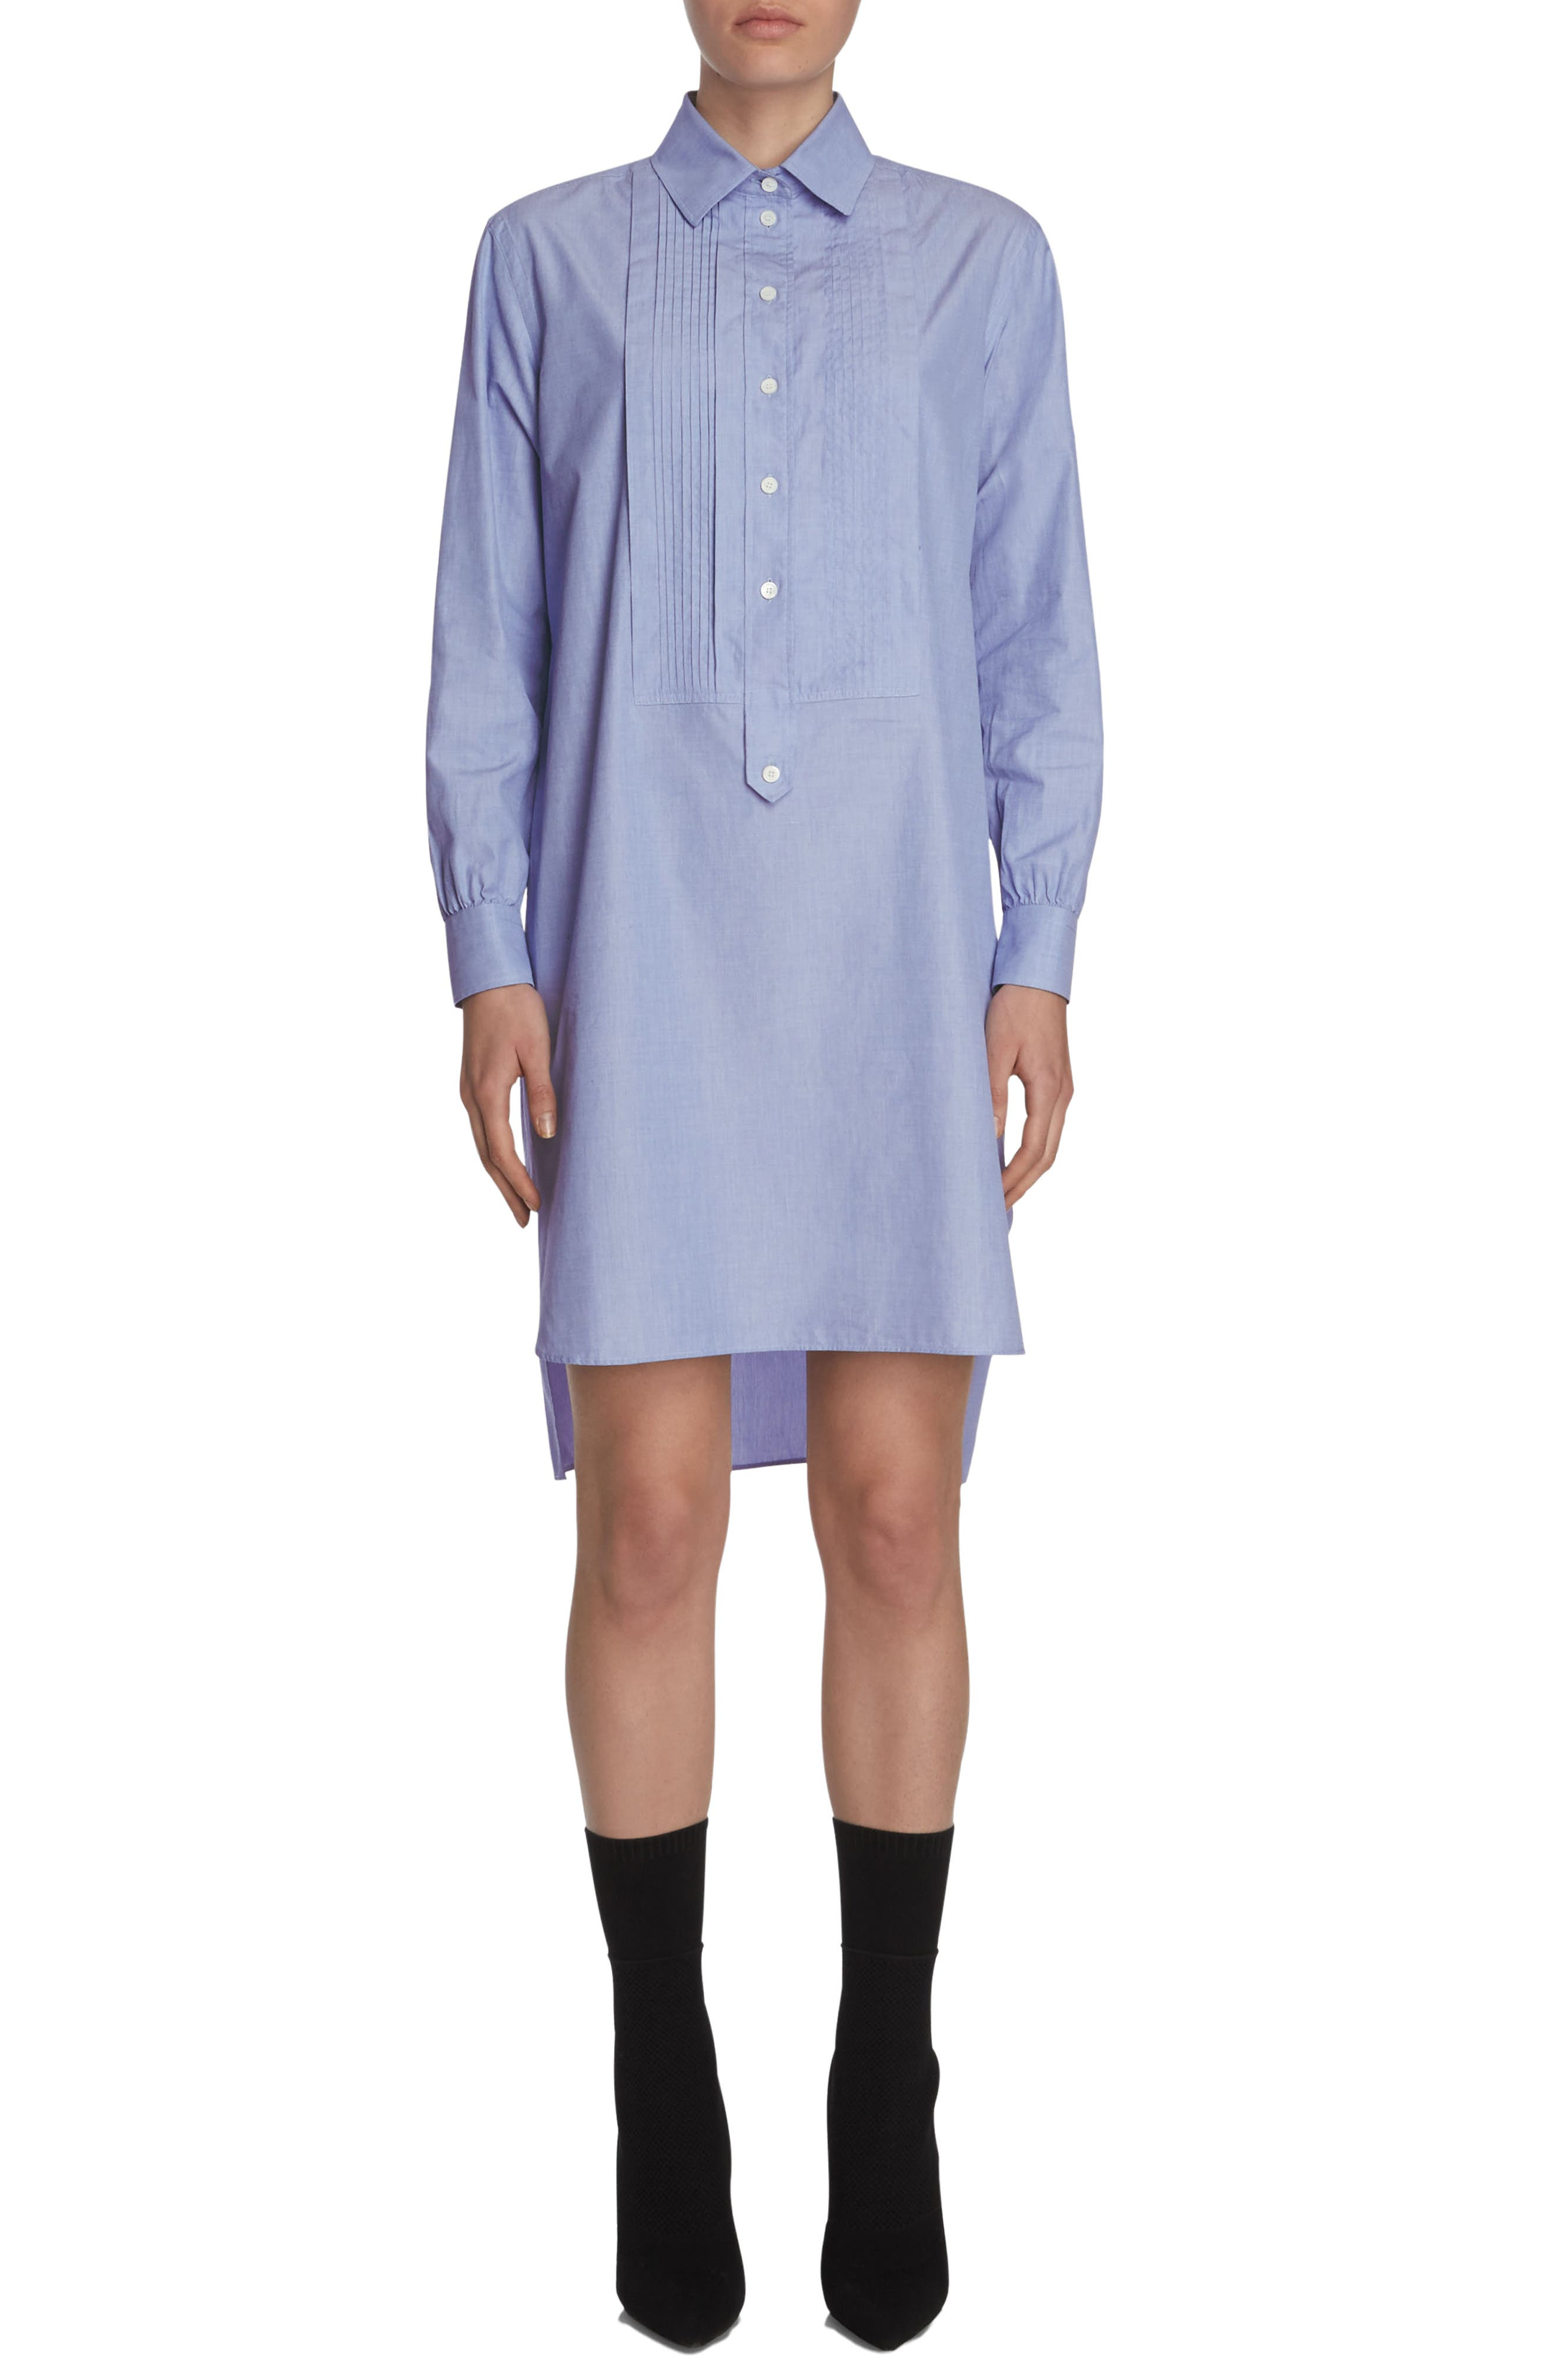 Alternate Image 1 Selected - Burberry Pintuck Cotton Shirtdress